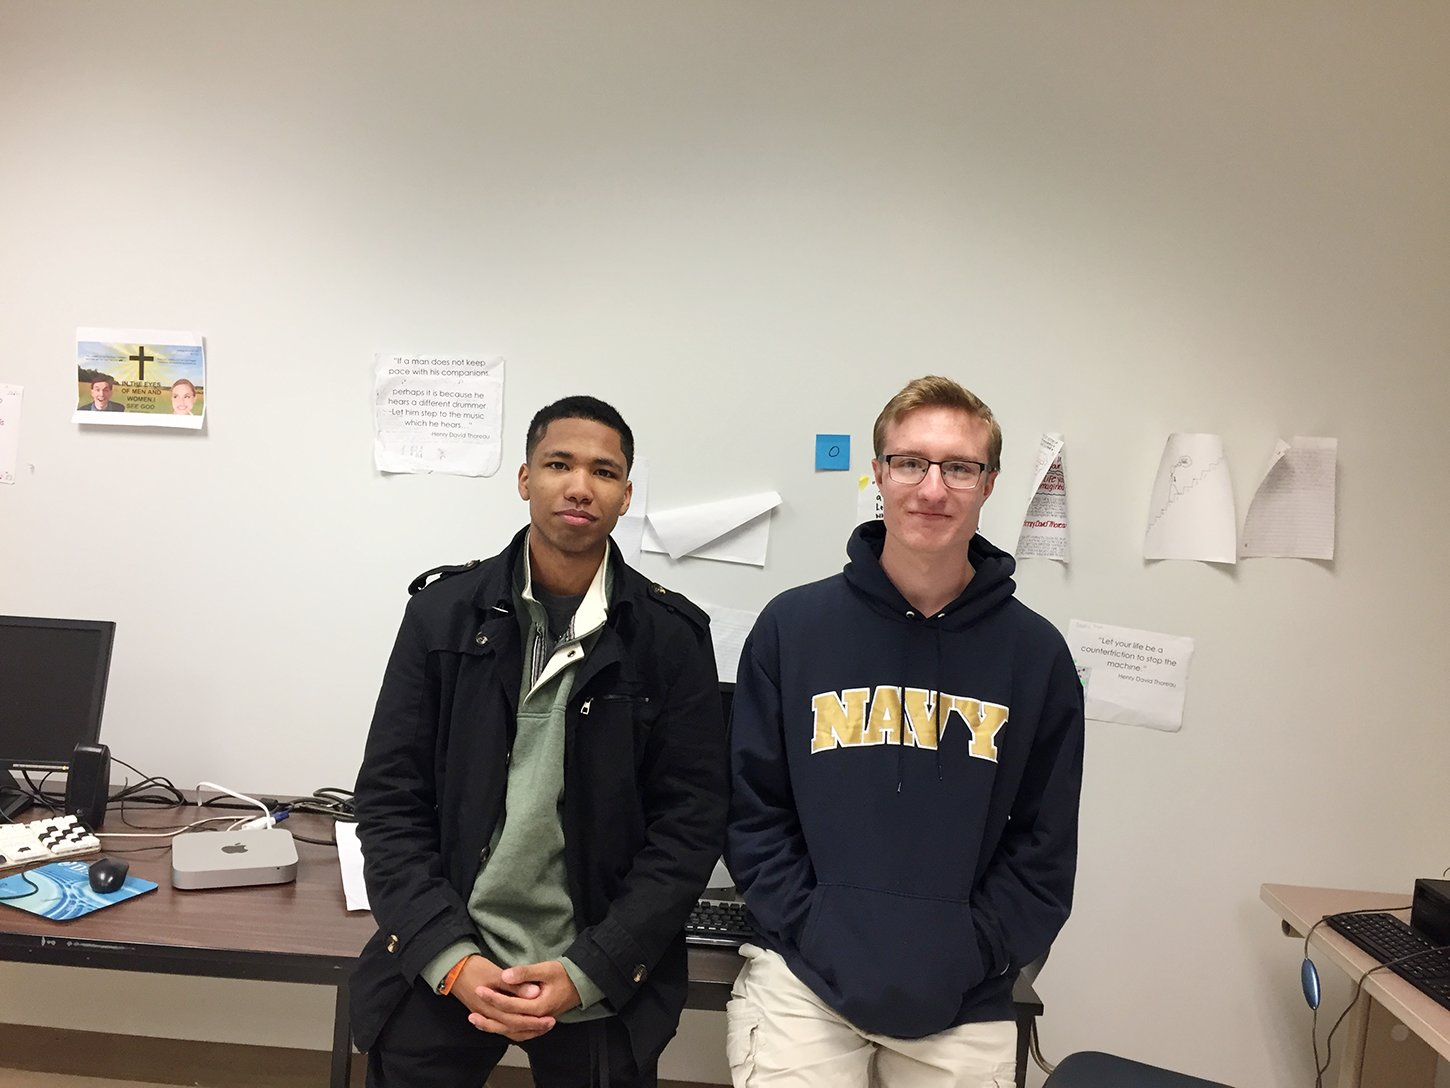 Jerrel Barnes (left) and Paul Cosby created a short film about an aspiring magician whose family tragedy leads him down a dark path.